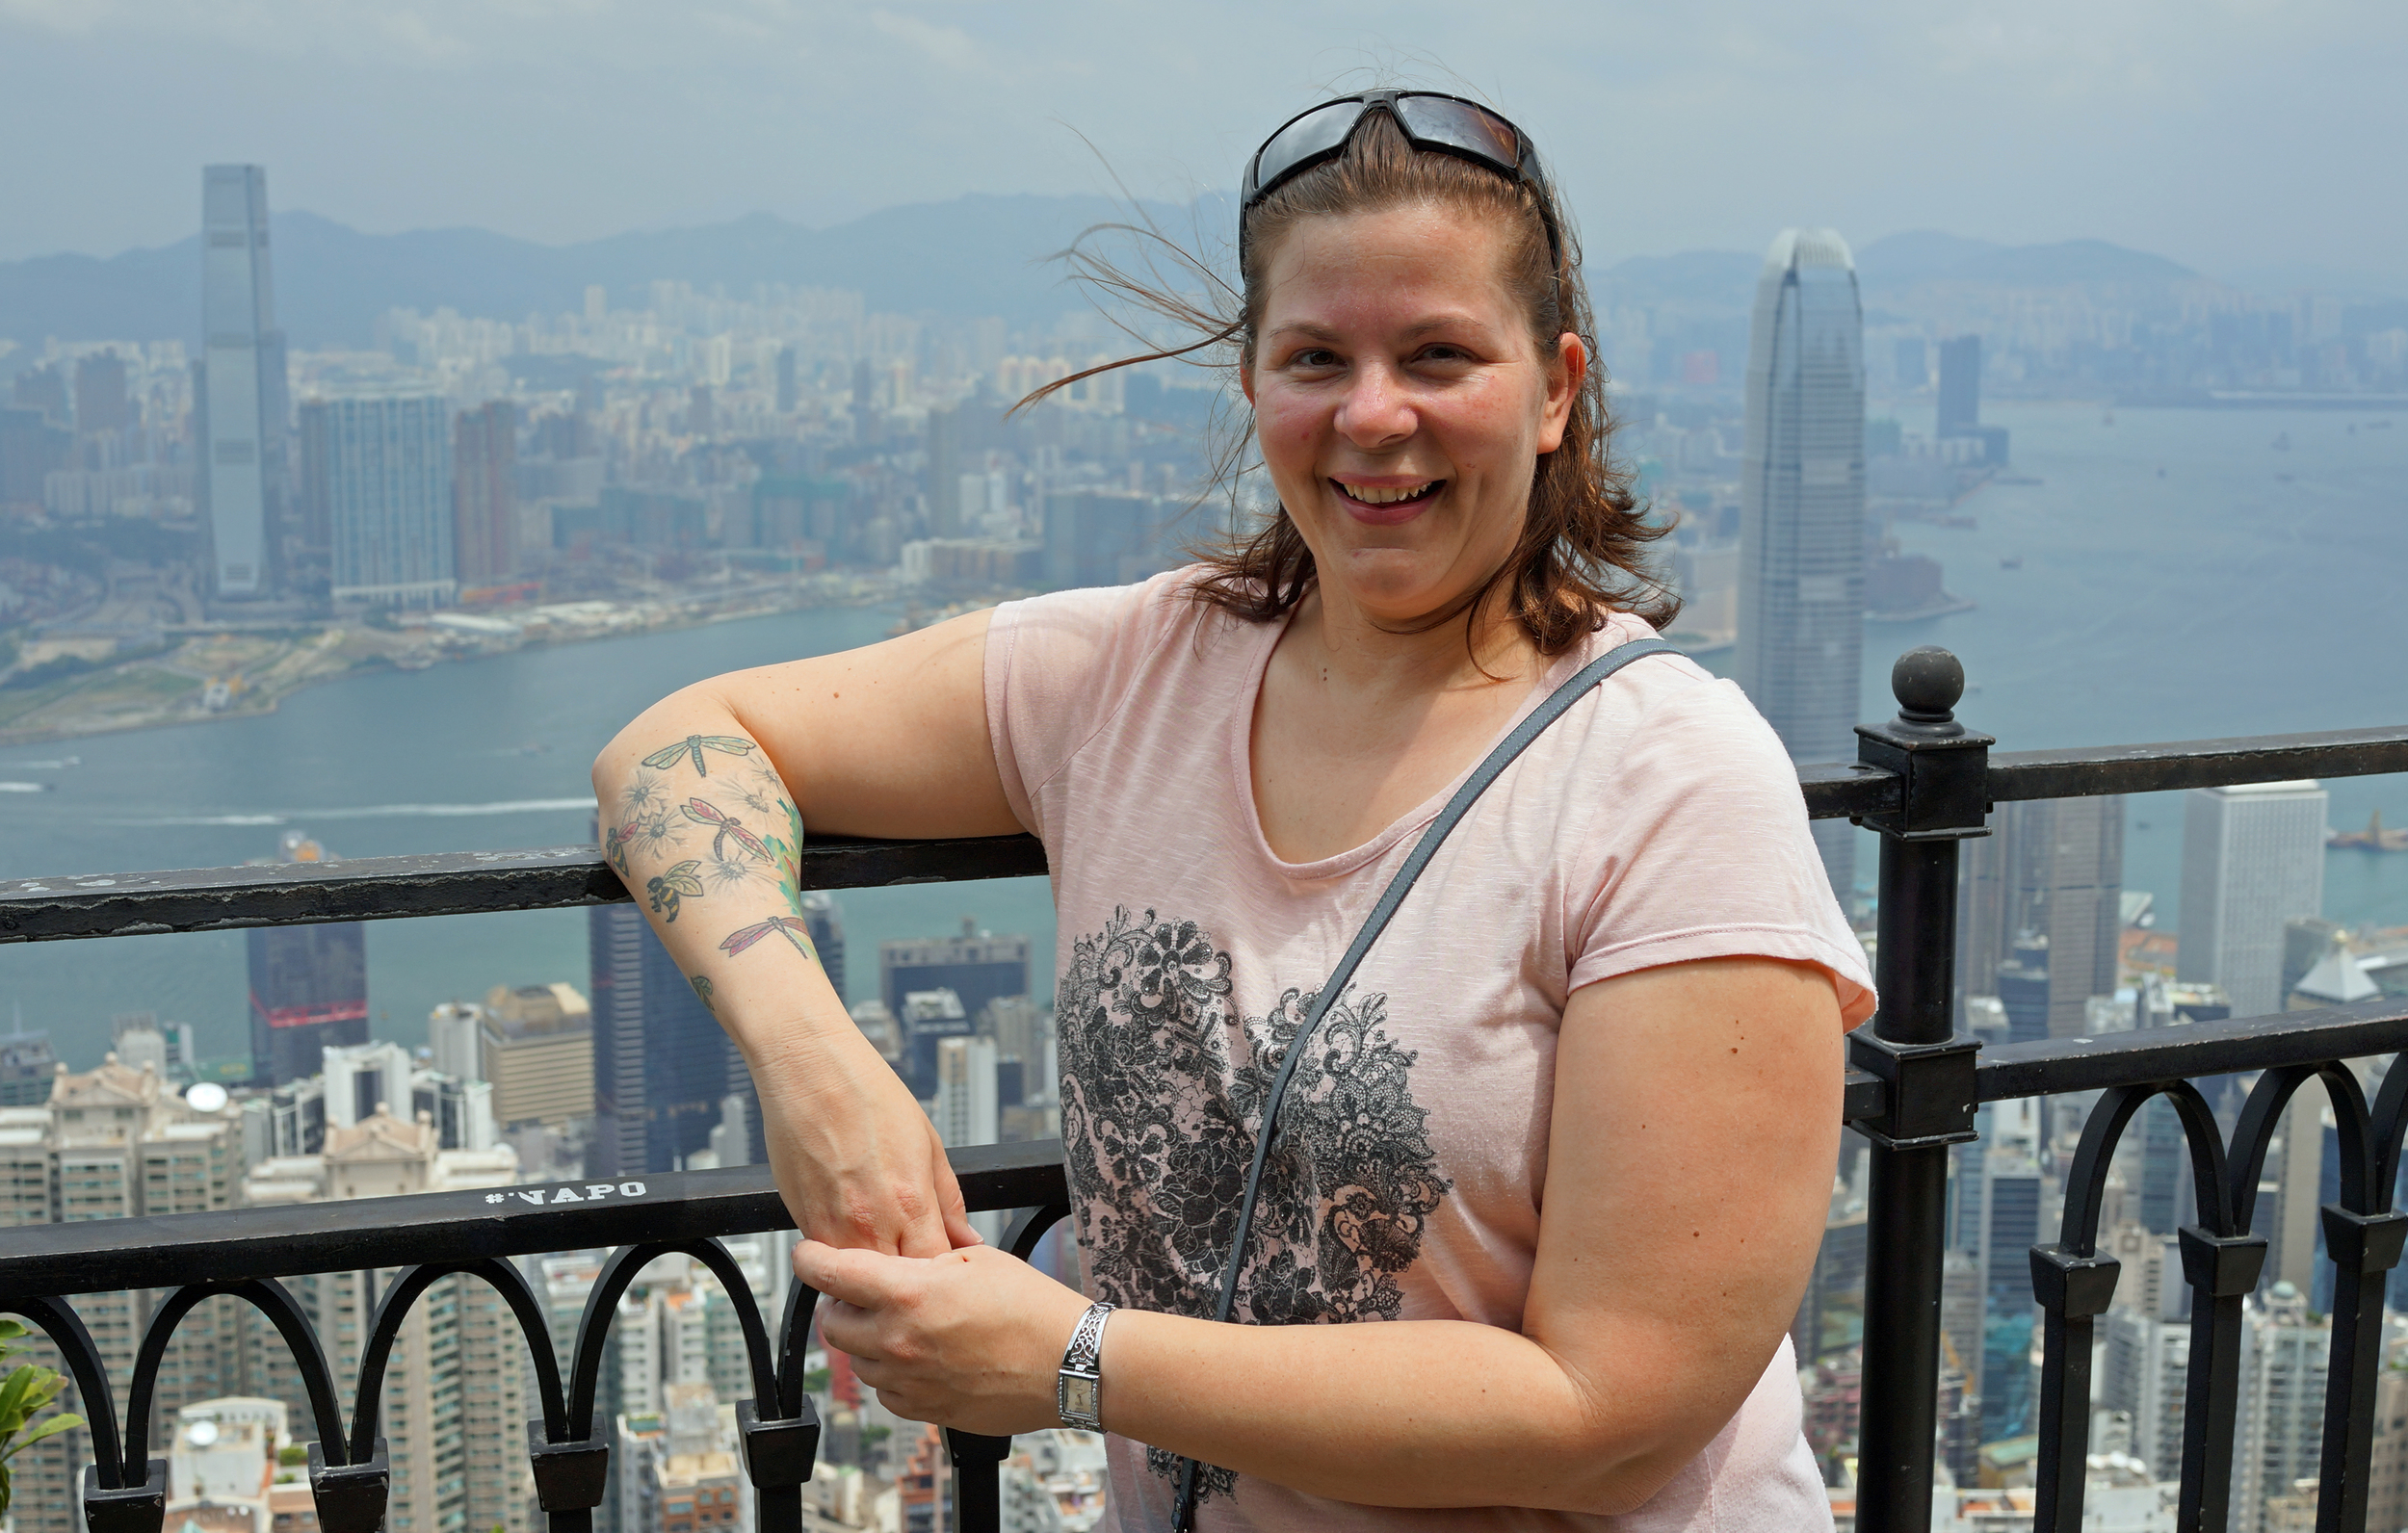 Meet Coni from Australia,.. Coni drives a monster truck at a mine! amazing.... another fine day at my spot at Victoria Peak